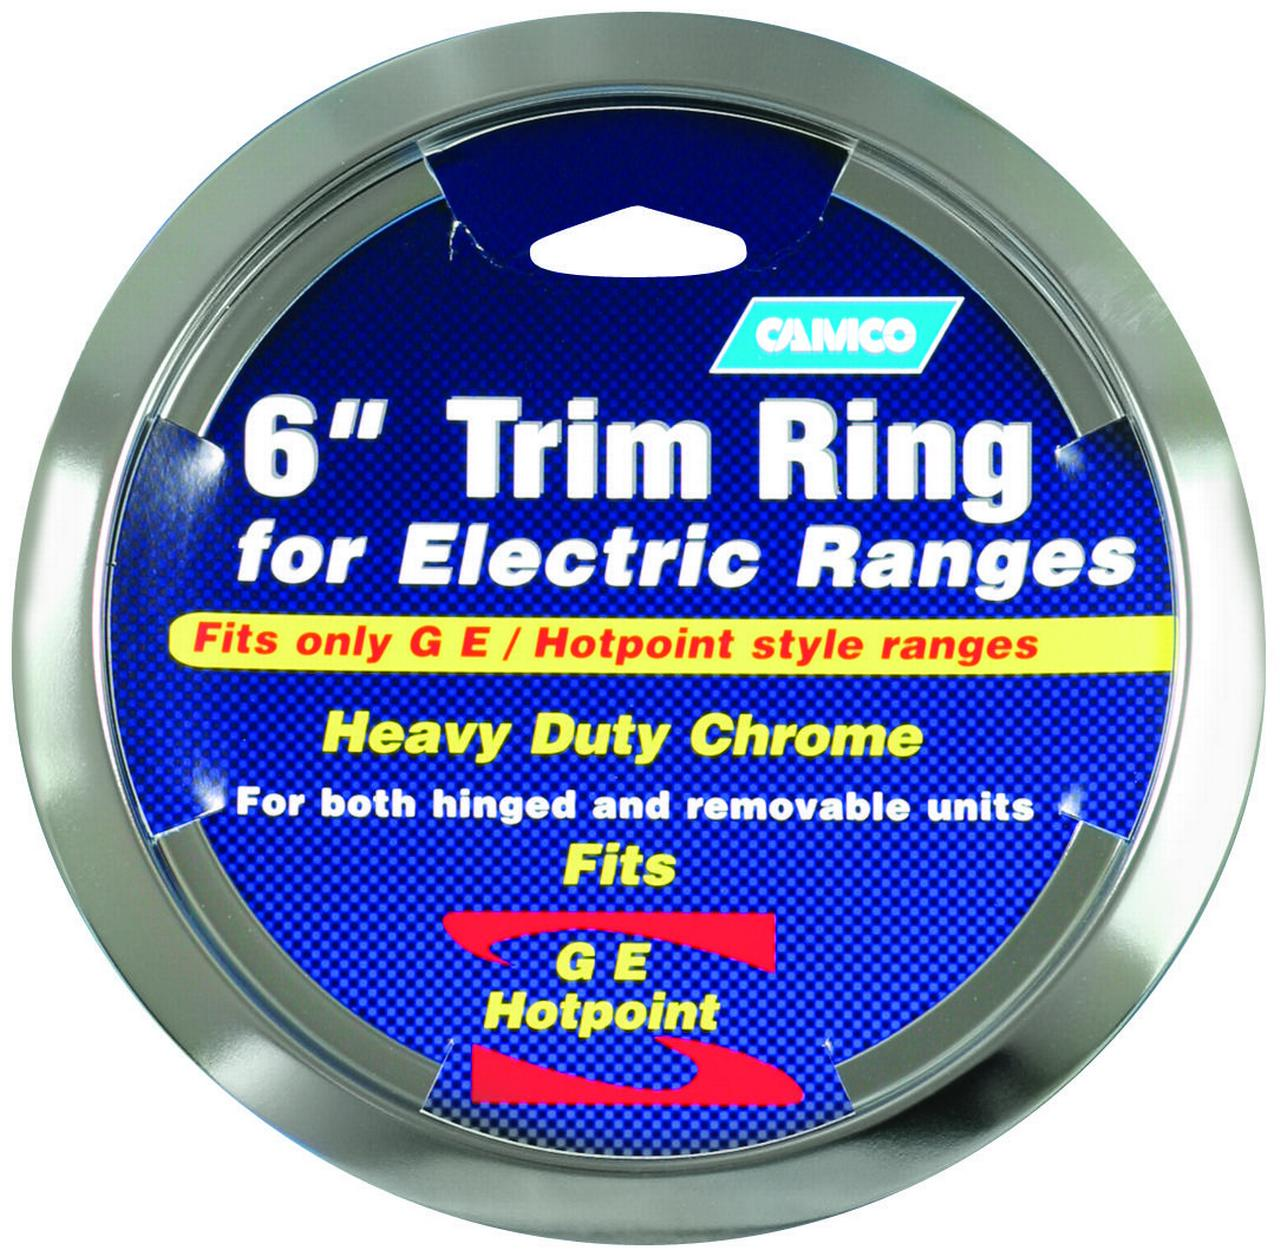 Camco GE/Hotpoint Electric Trim Ring, For Use With Metal or Porcelain Pans, 6 in Dia, Chrome Plated